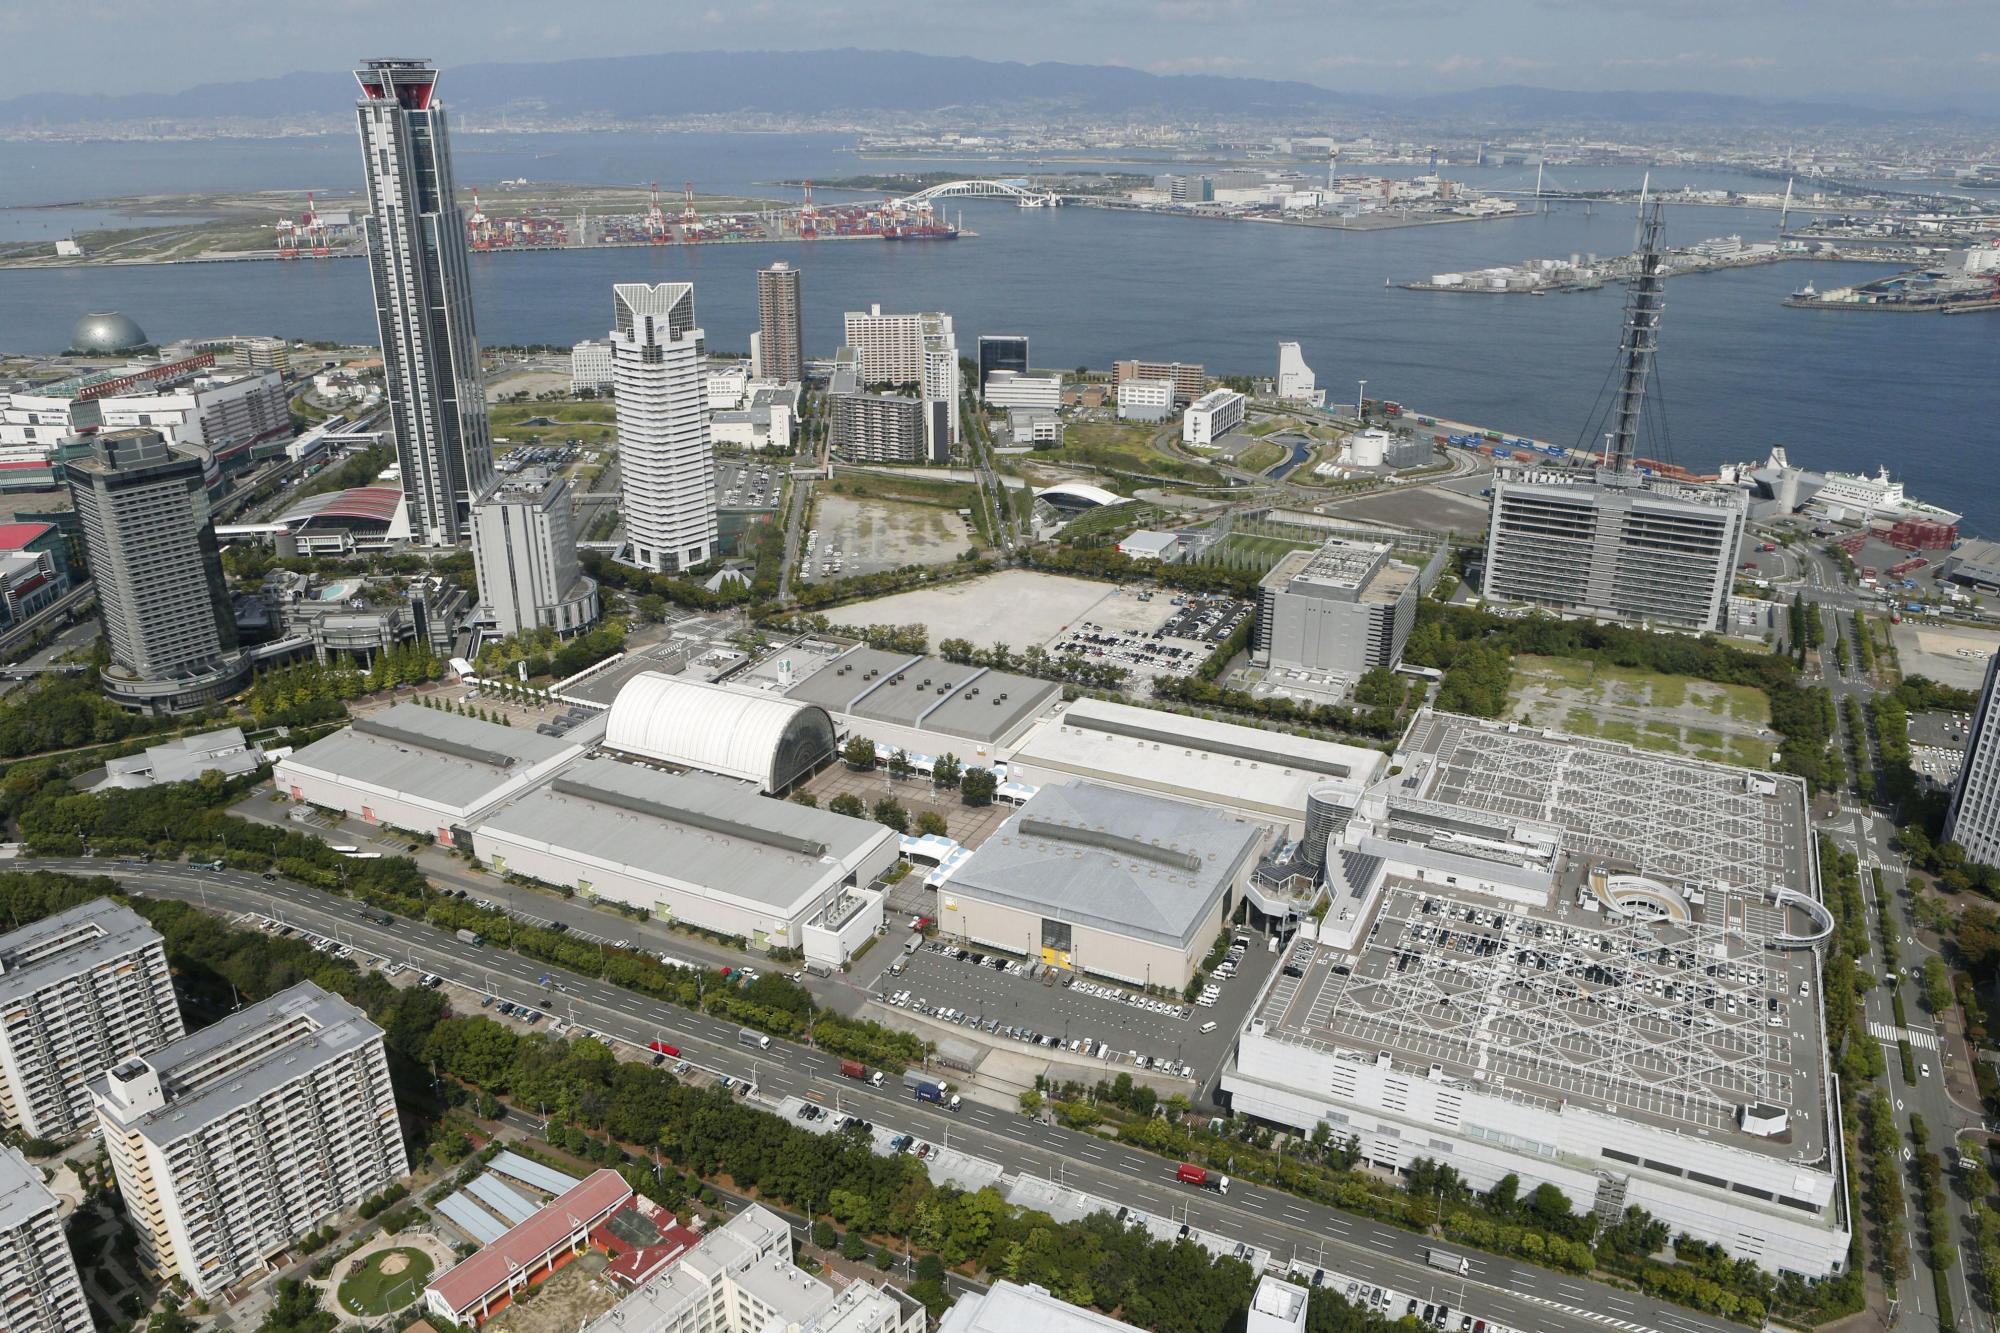 The Intex Osaka convention center in the city's waterfront area will host next year's Group of 20 leaders' summit. | KYODO